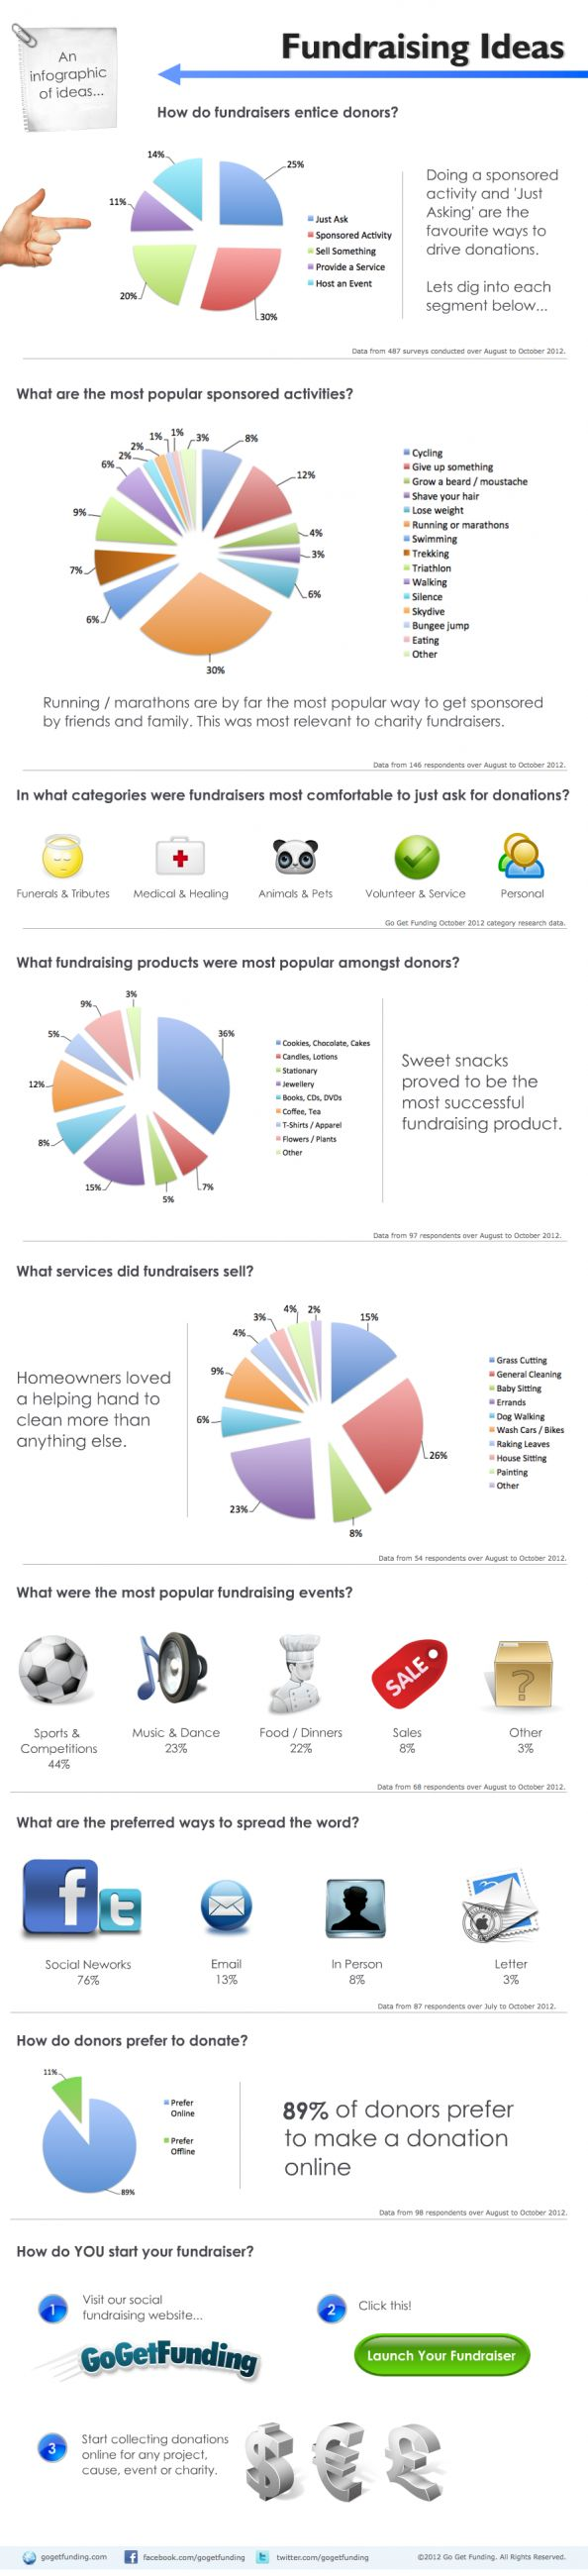 fundraising ideas infographic breaks down popularity of various events and other fundraising options